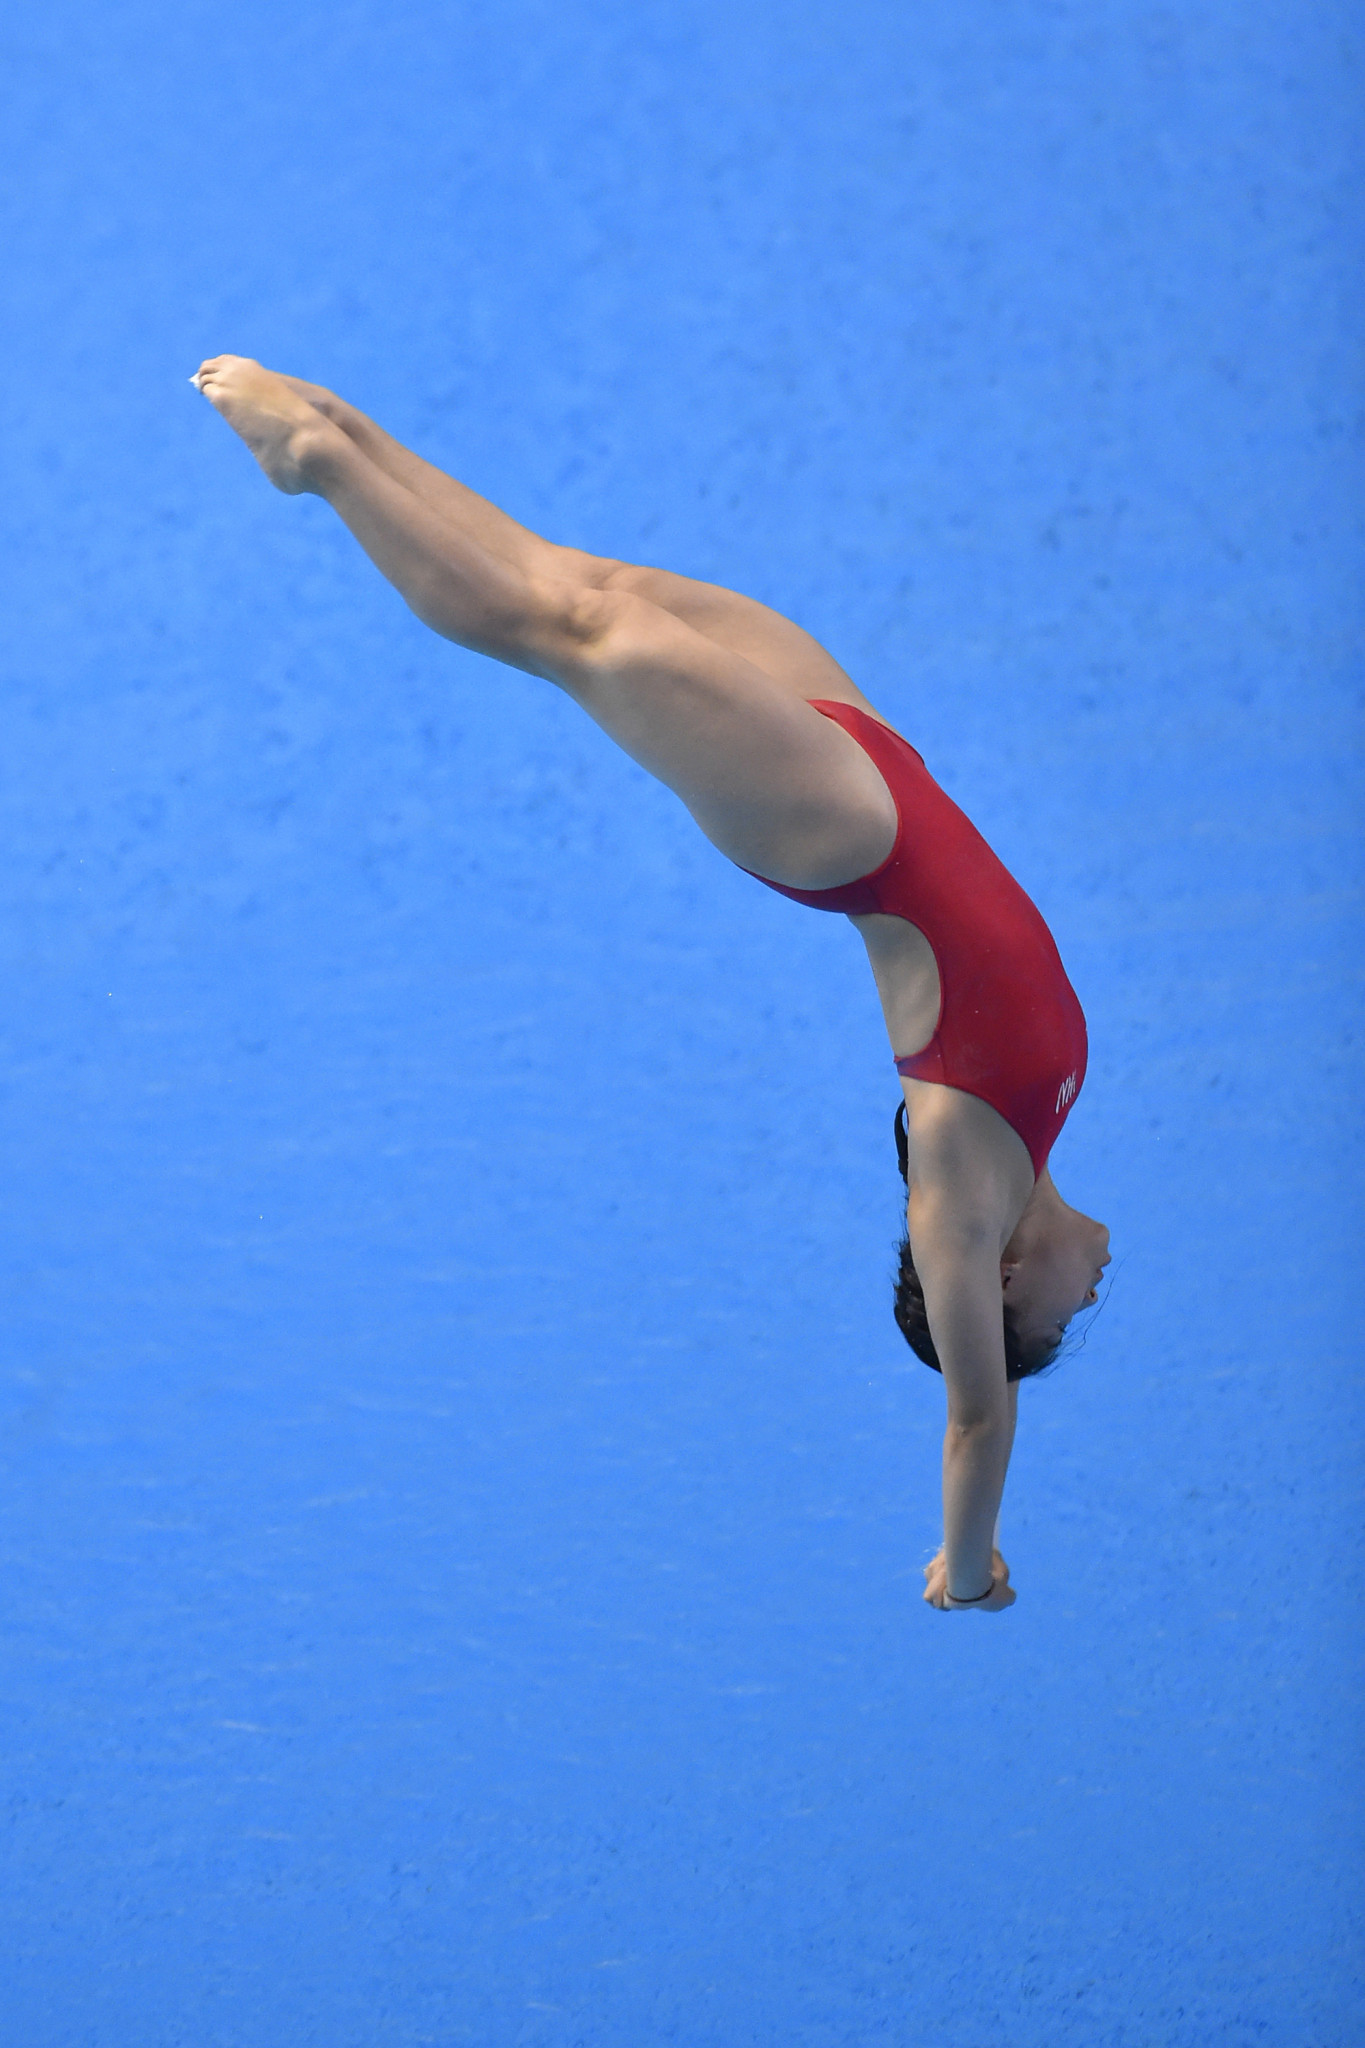 Huang Xiaohui was the winner in the women's 3m springboard competition at the FINA Diving Grand Prix event in Singapore ©Getty Images